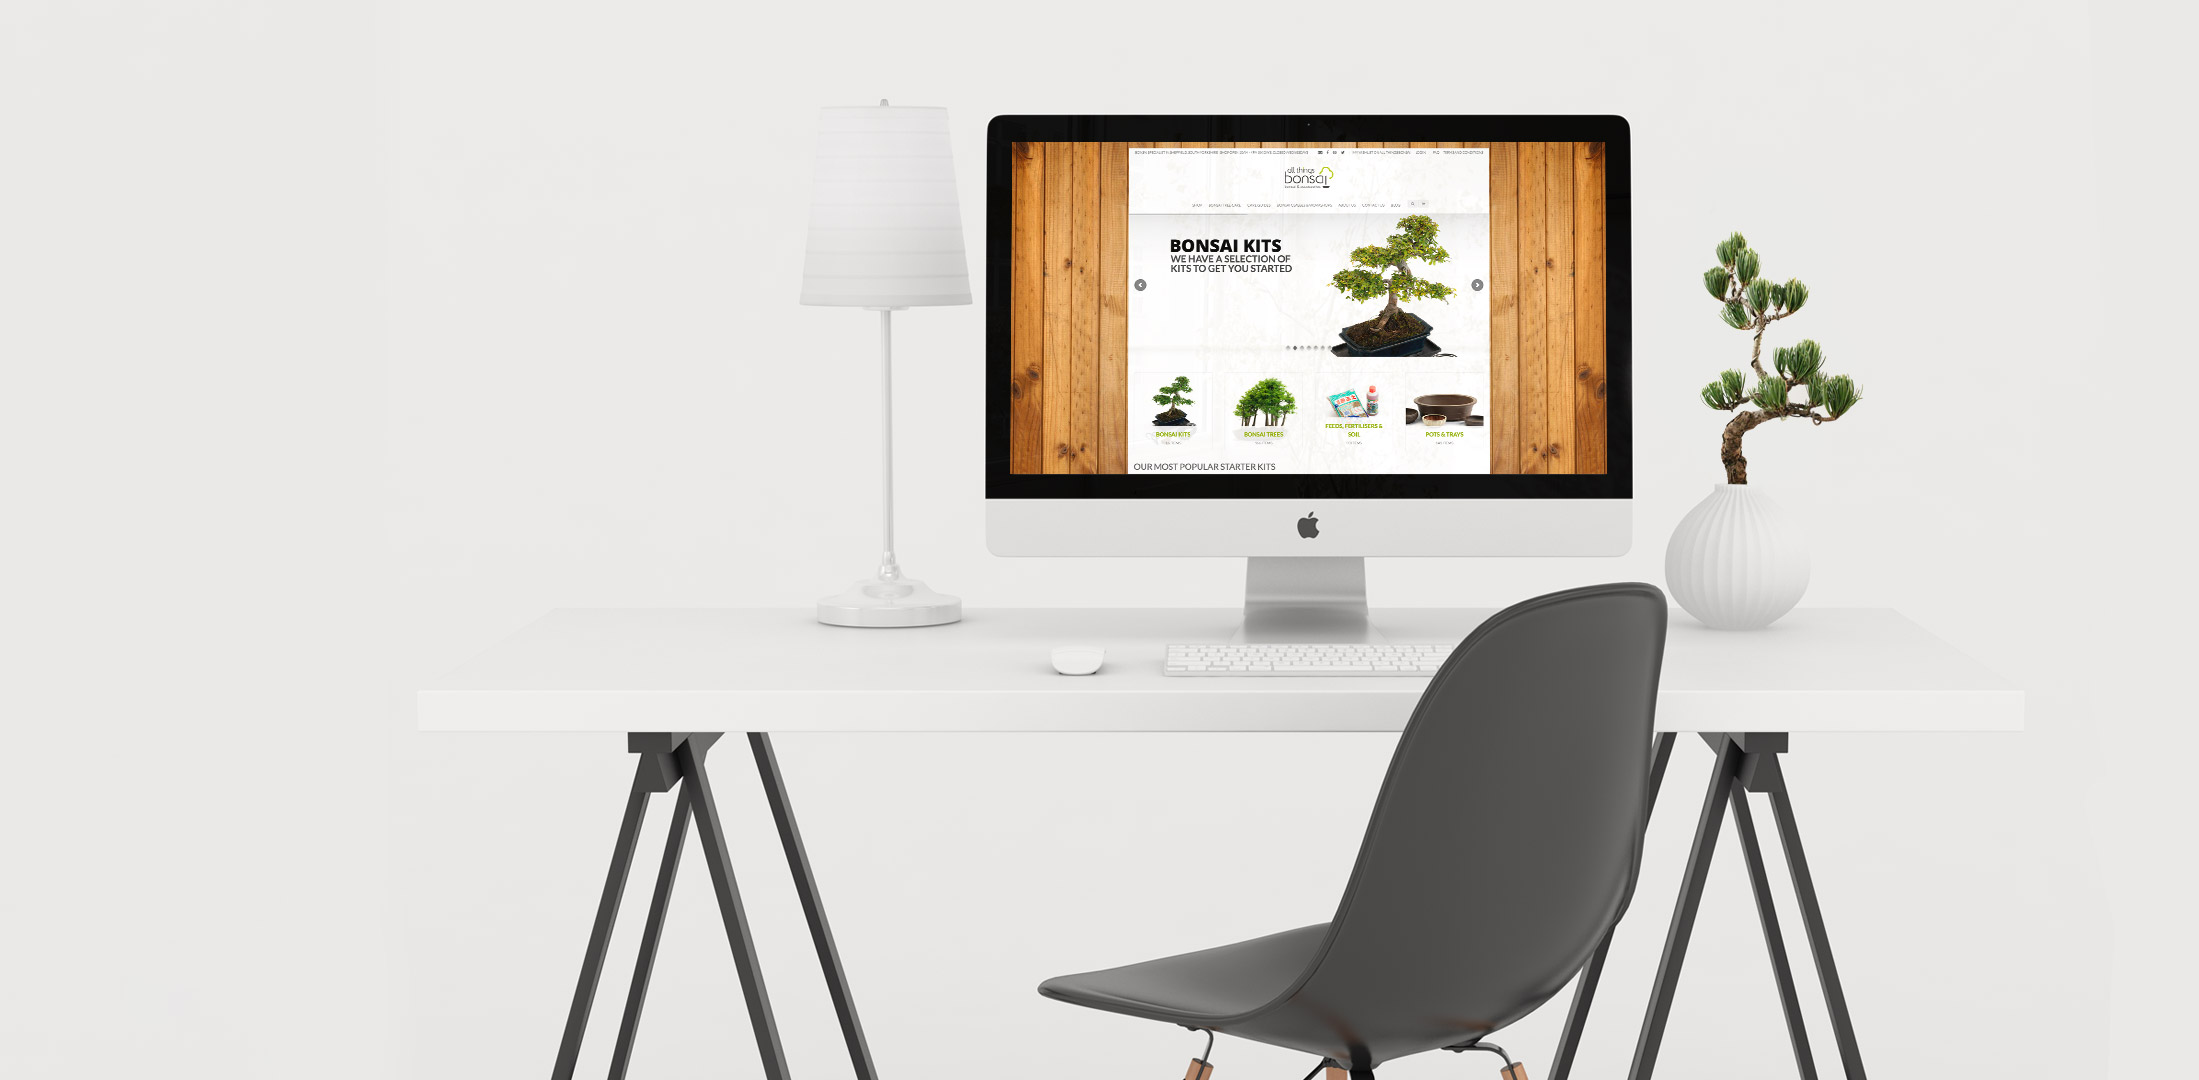 imac all things bonsai mockup